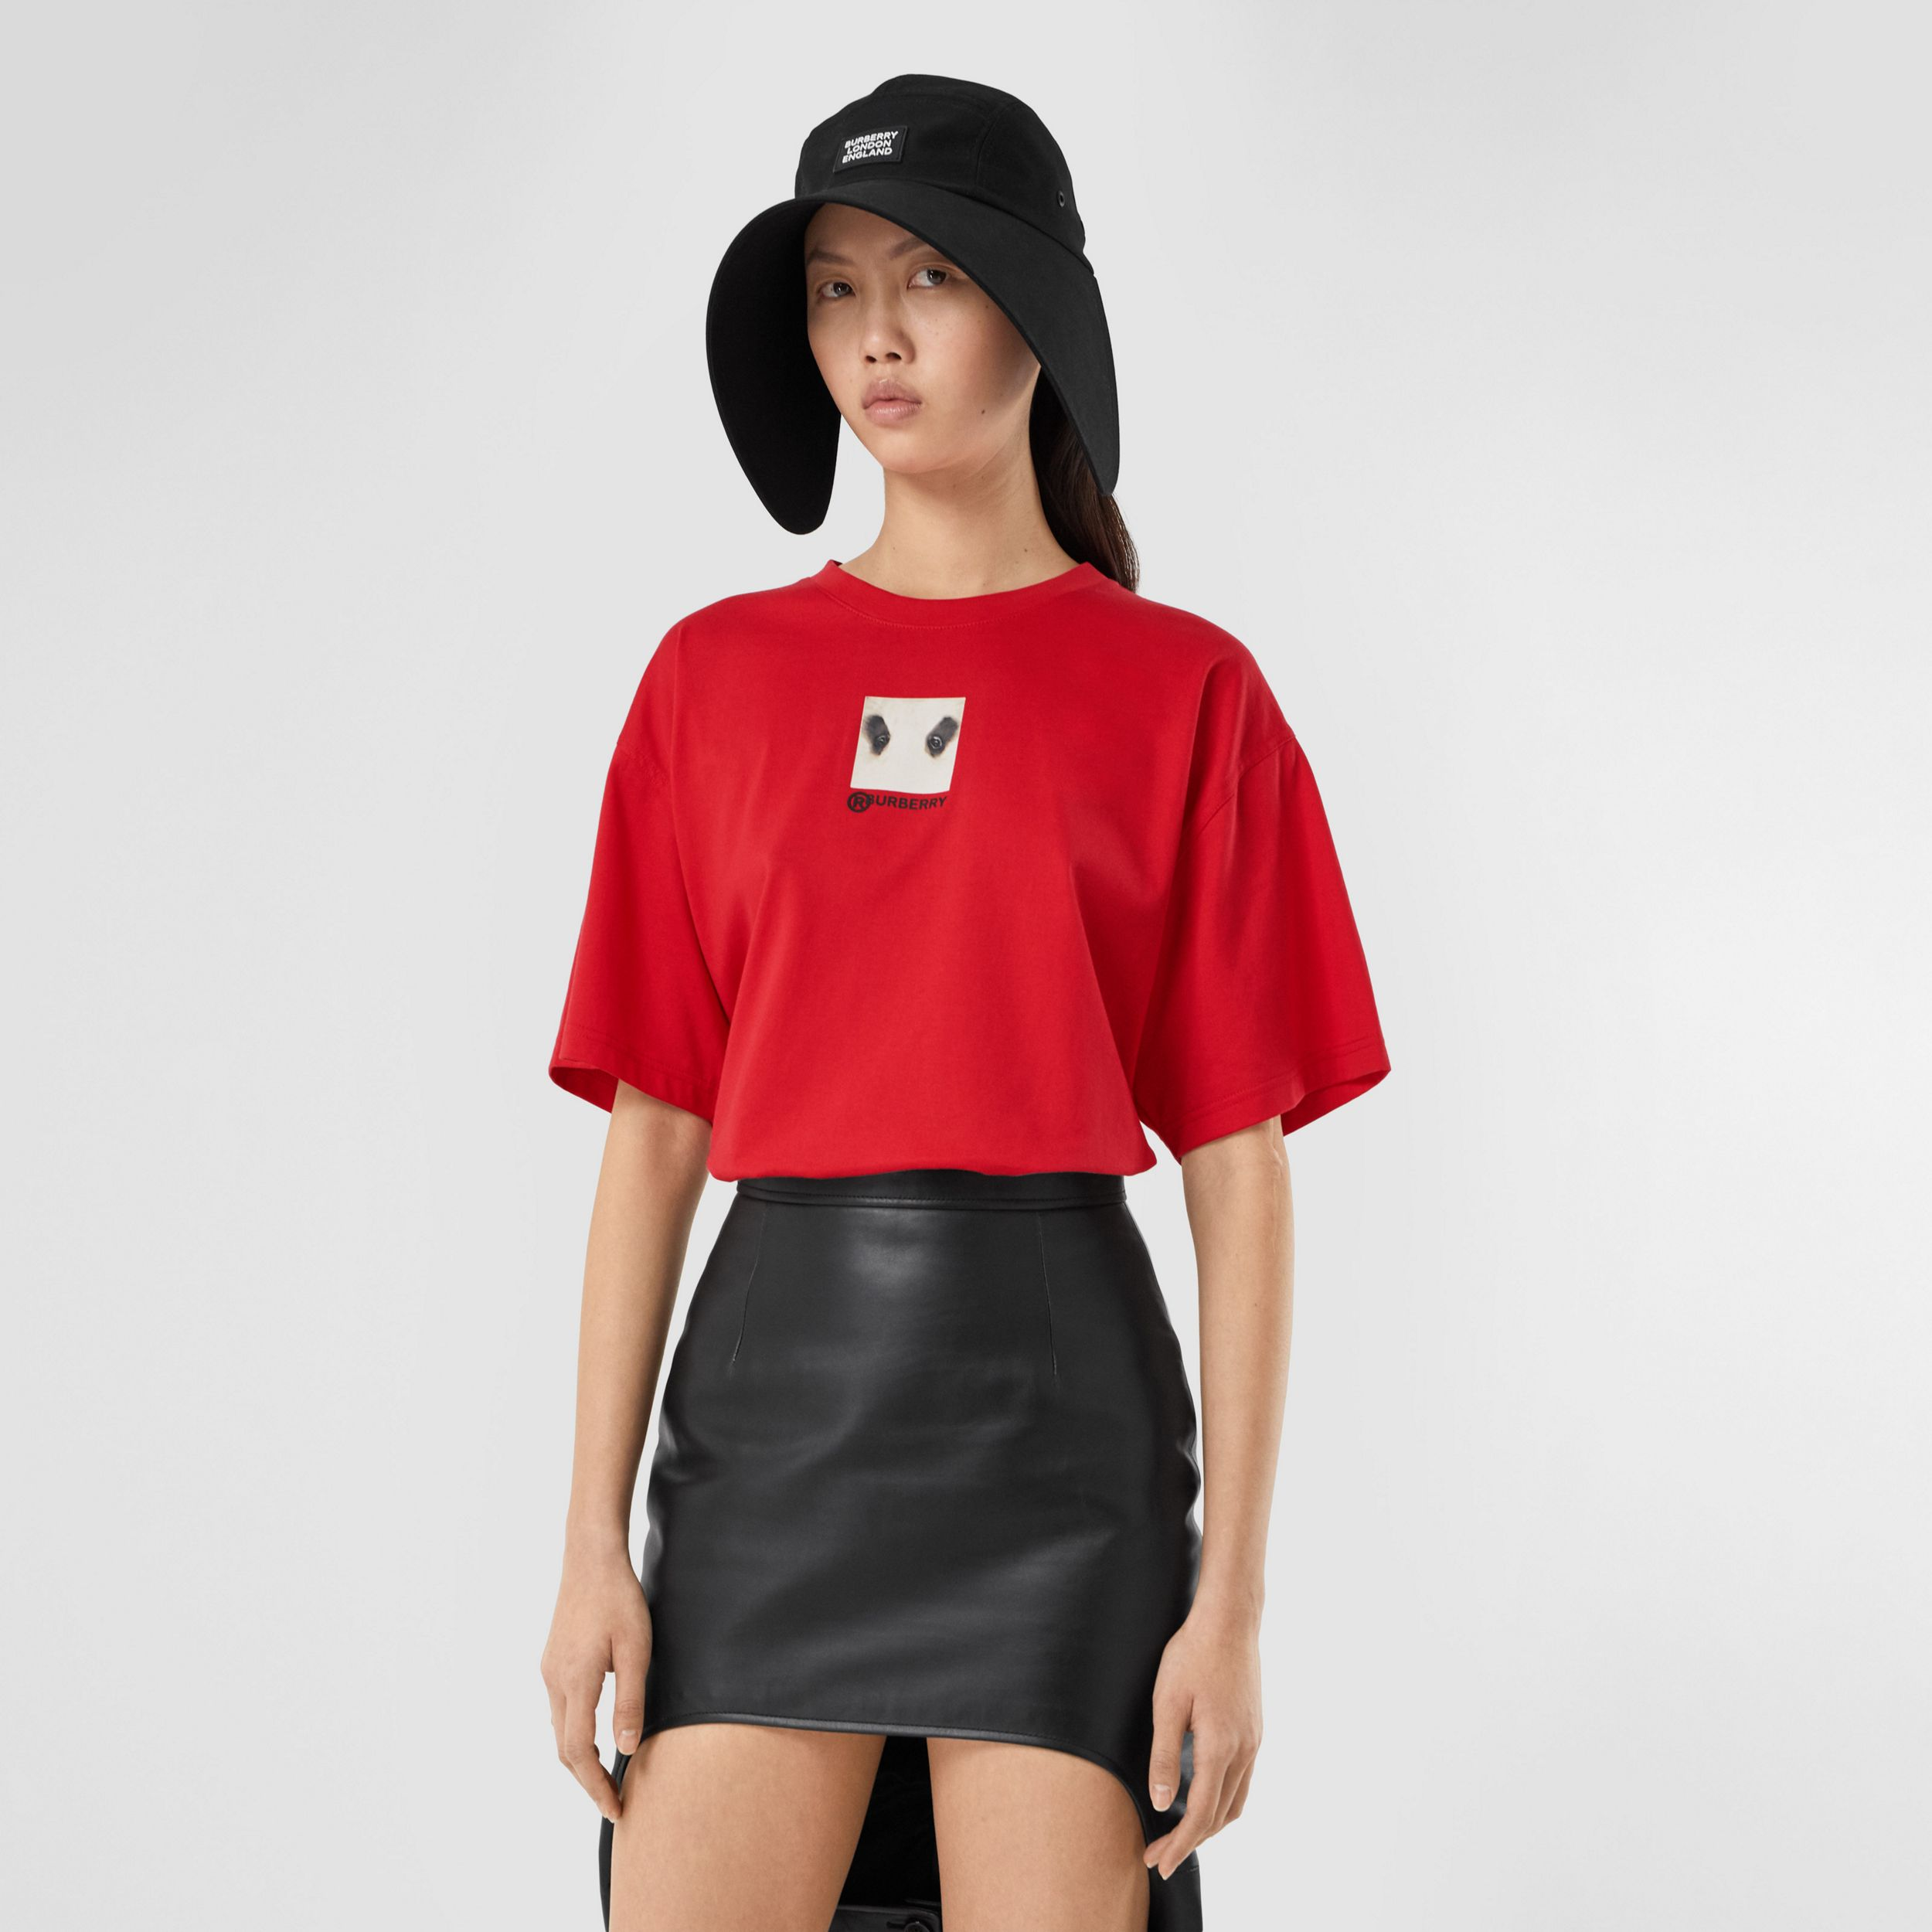 Montage Print Cotton Oversized T-shirt in Bright Red - Women | Burberry - 1